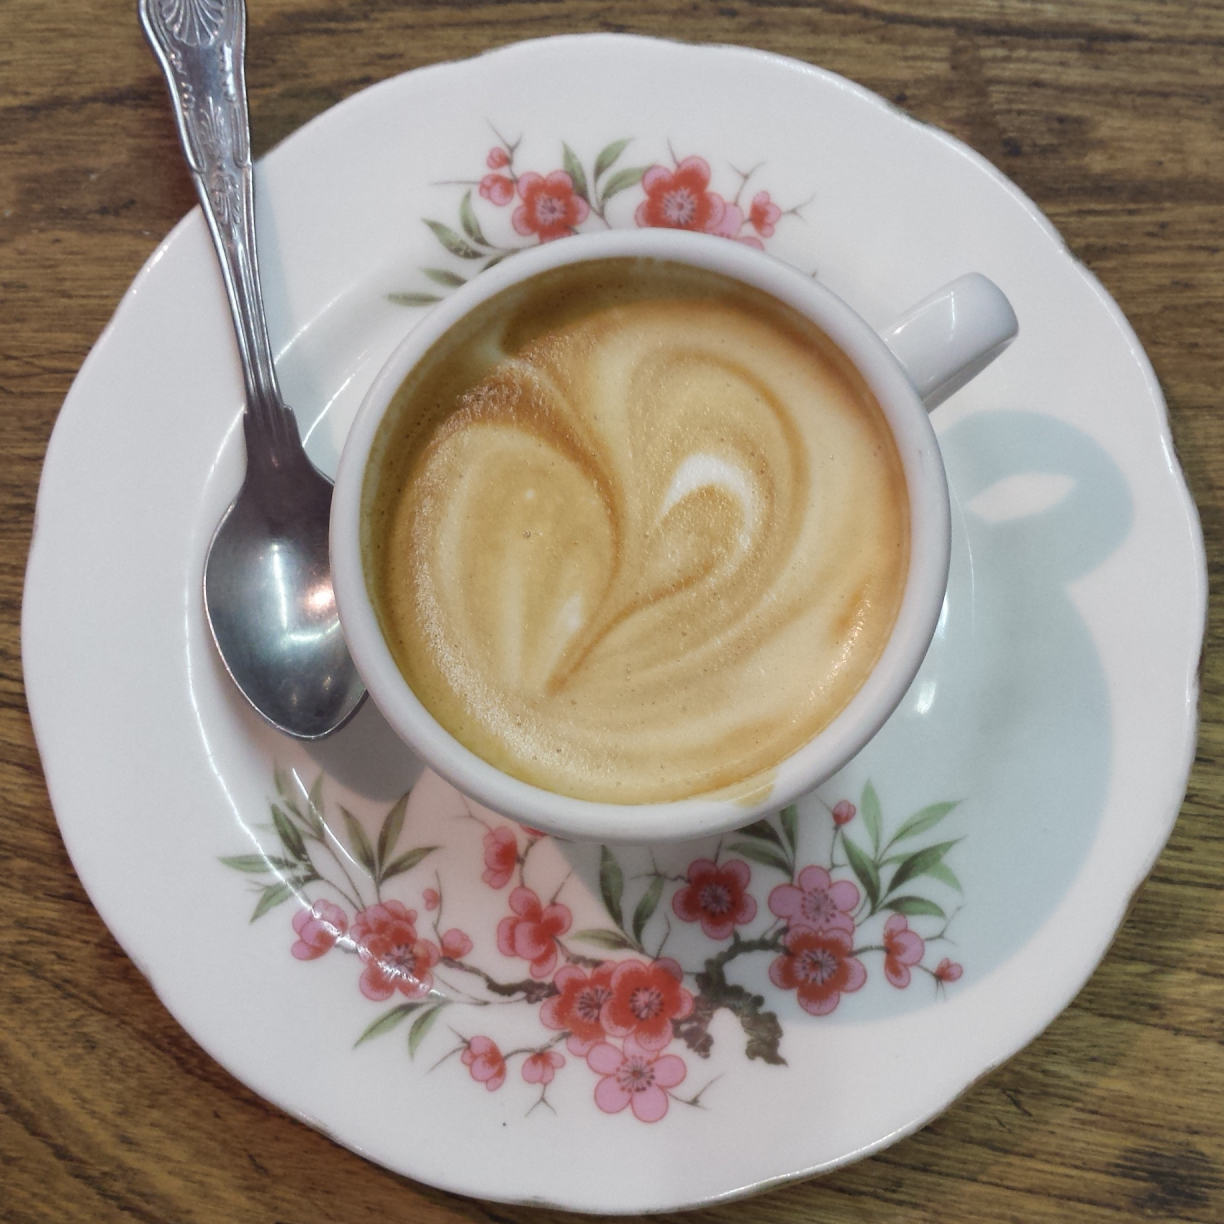 A lovely, creamy piccolo in a classic espresso cup, seen from above on an over-sized floral saucer.